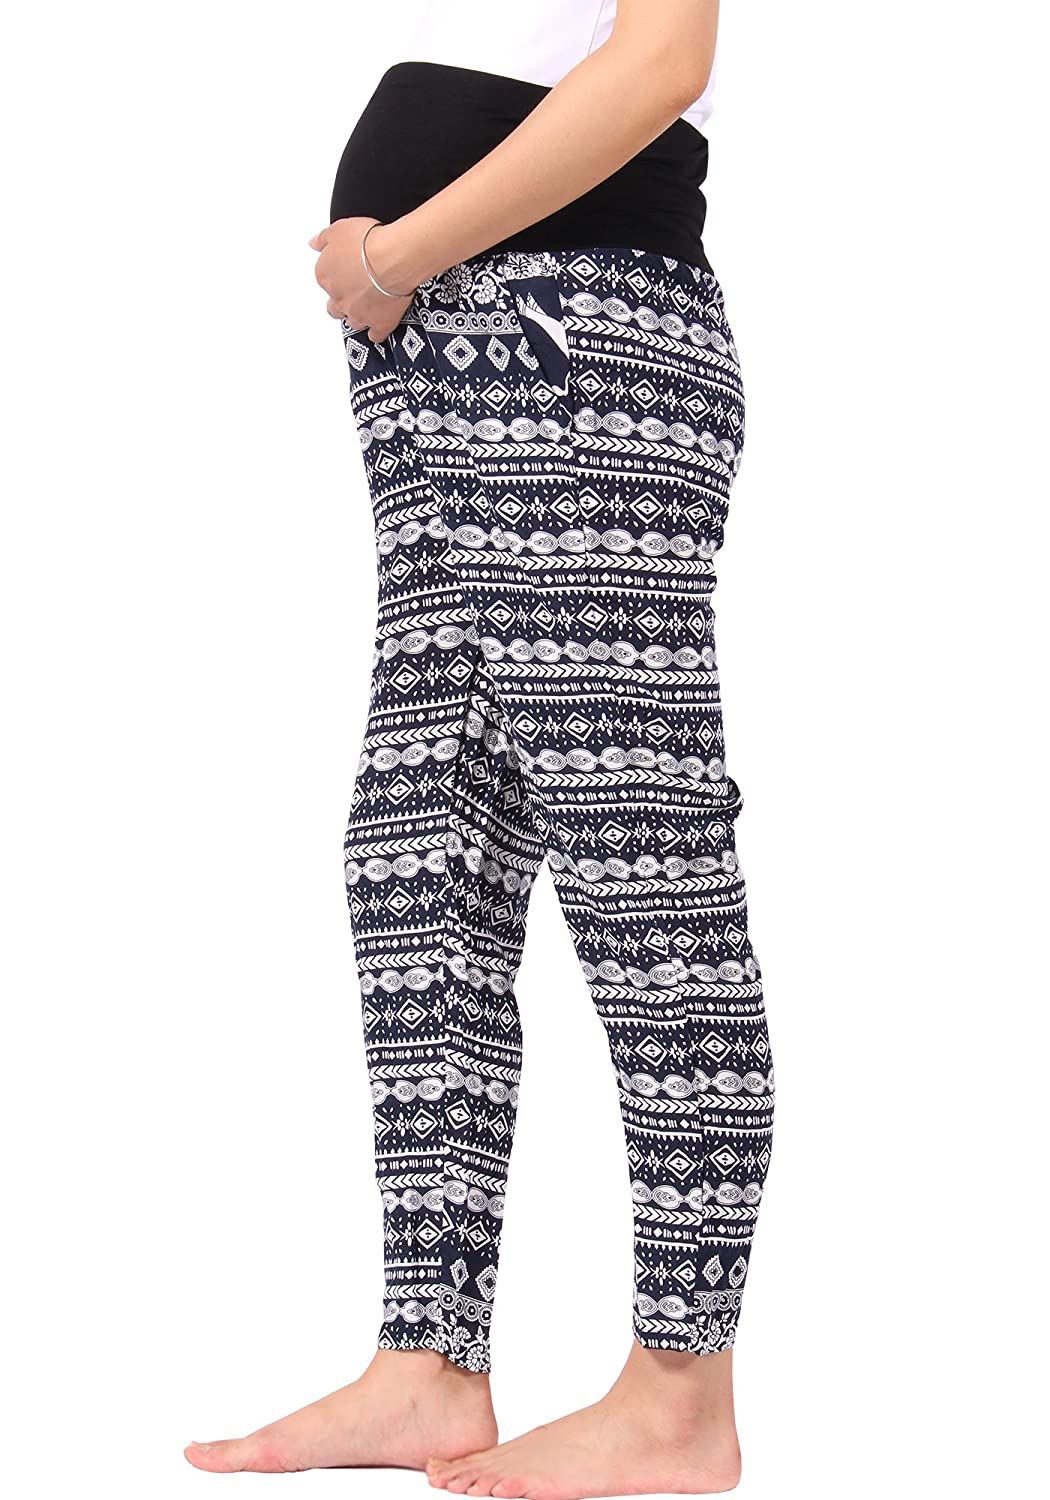 7b1e9d2821fd3 MAMAFLY Women's Cotton Loose Fitting Maternity Harem Boho Pants Trousers  with Pockets at Amazon Women's Clothing store: